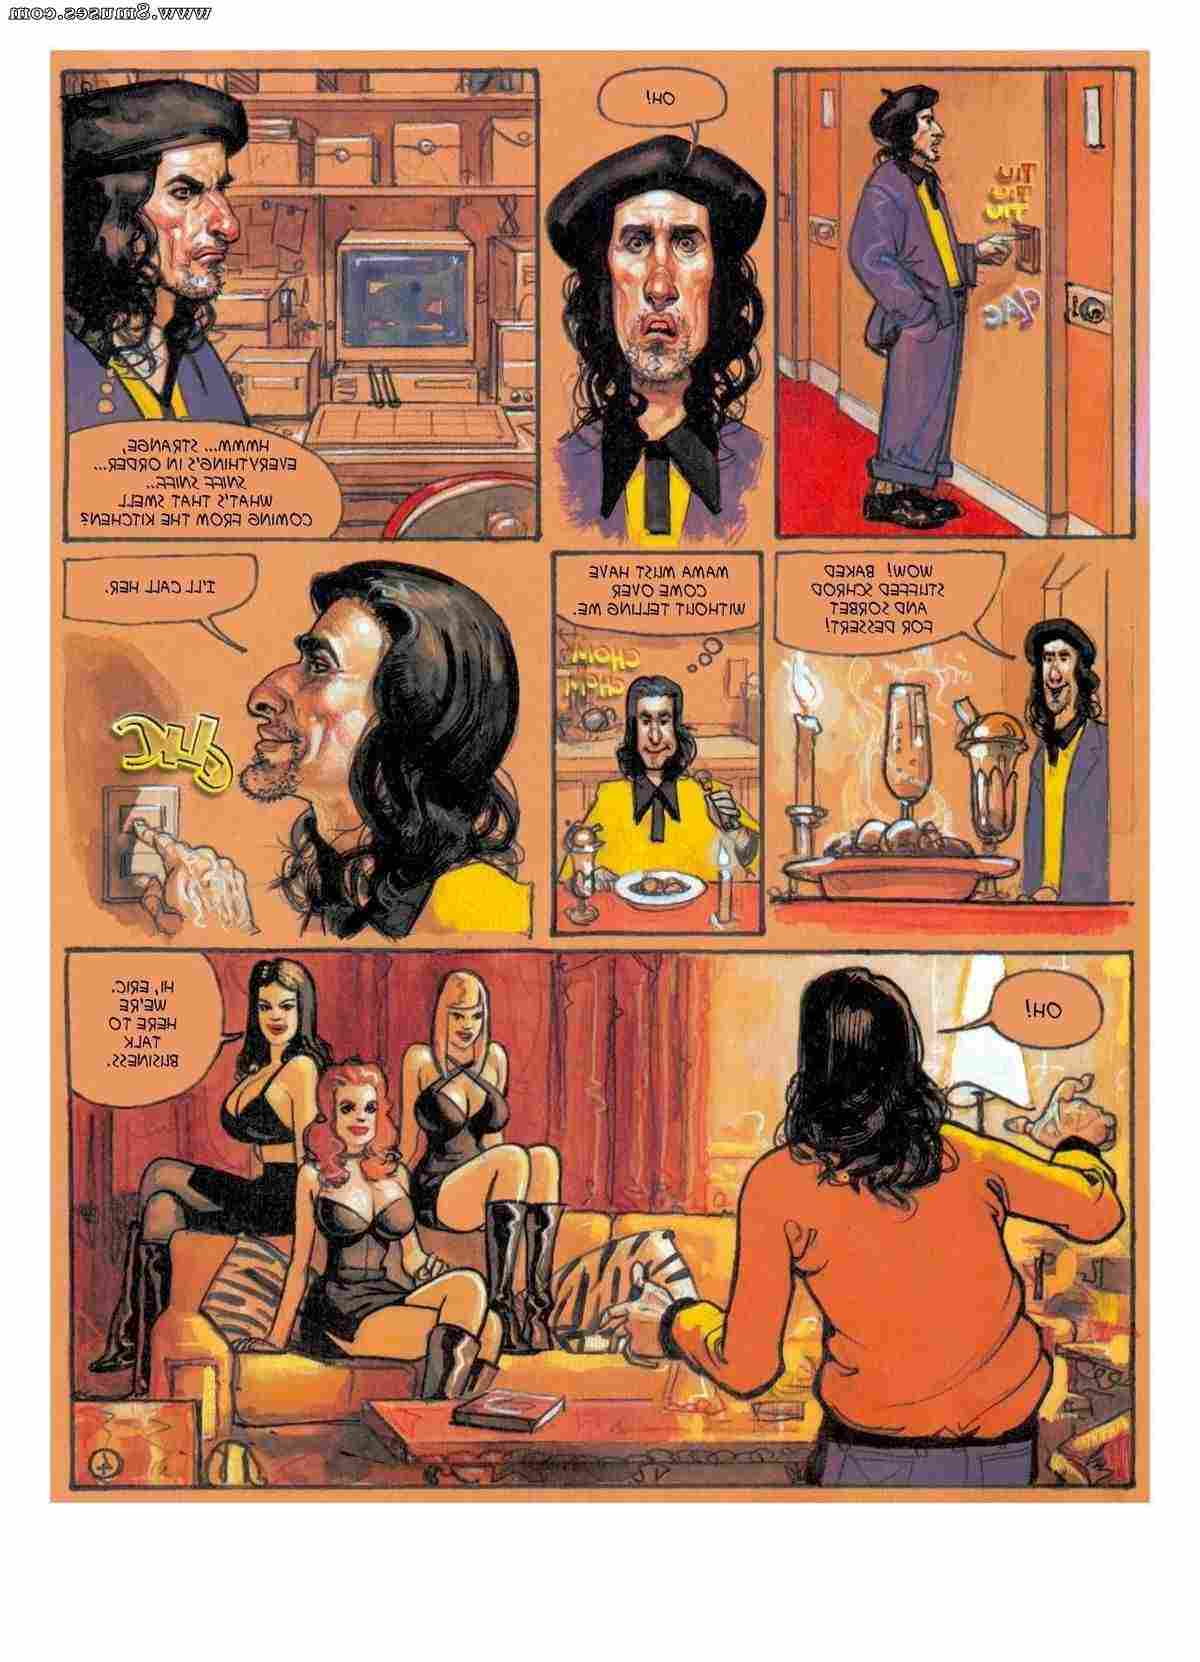 Ignacio-Noe-Comics/All-the-Right-Career-Moves All_the_Right_Career_Moves__8muses_-_Sex_and_Porn_Comics_12.jpg